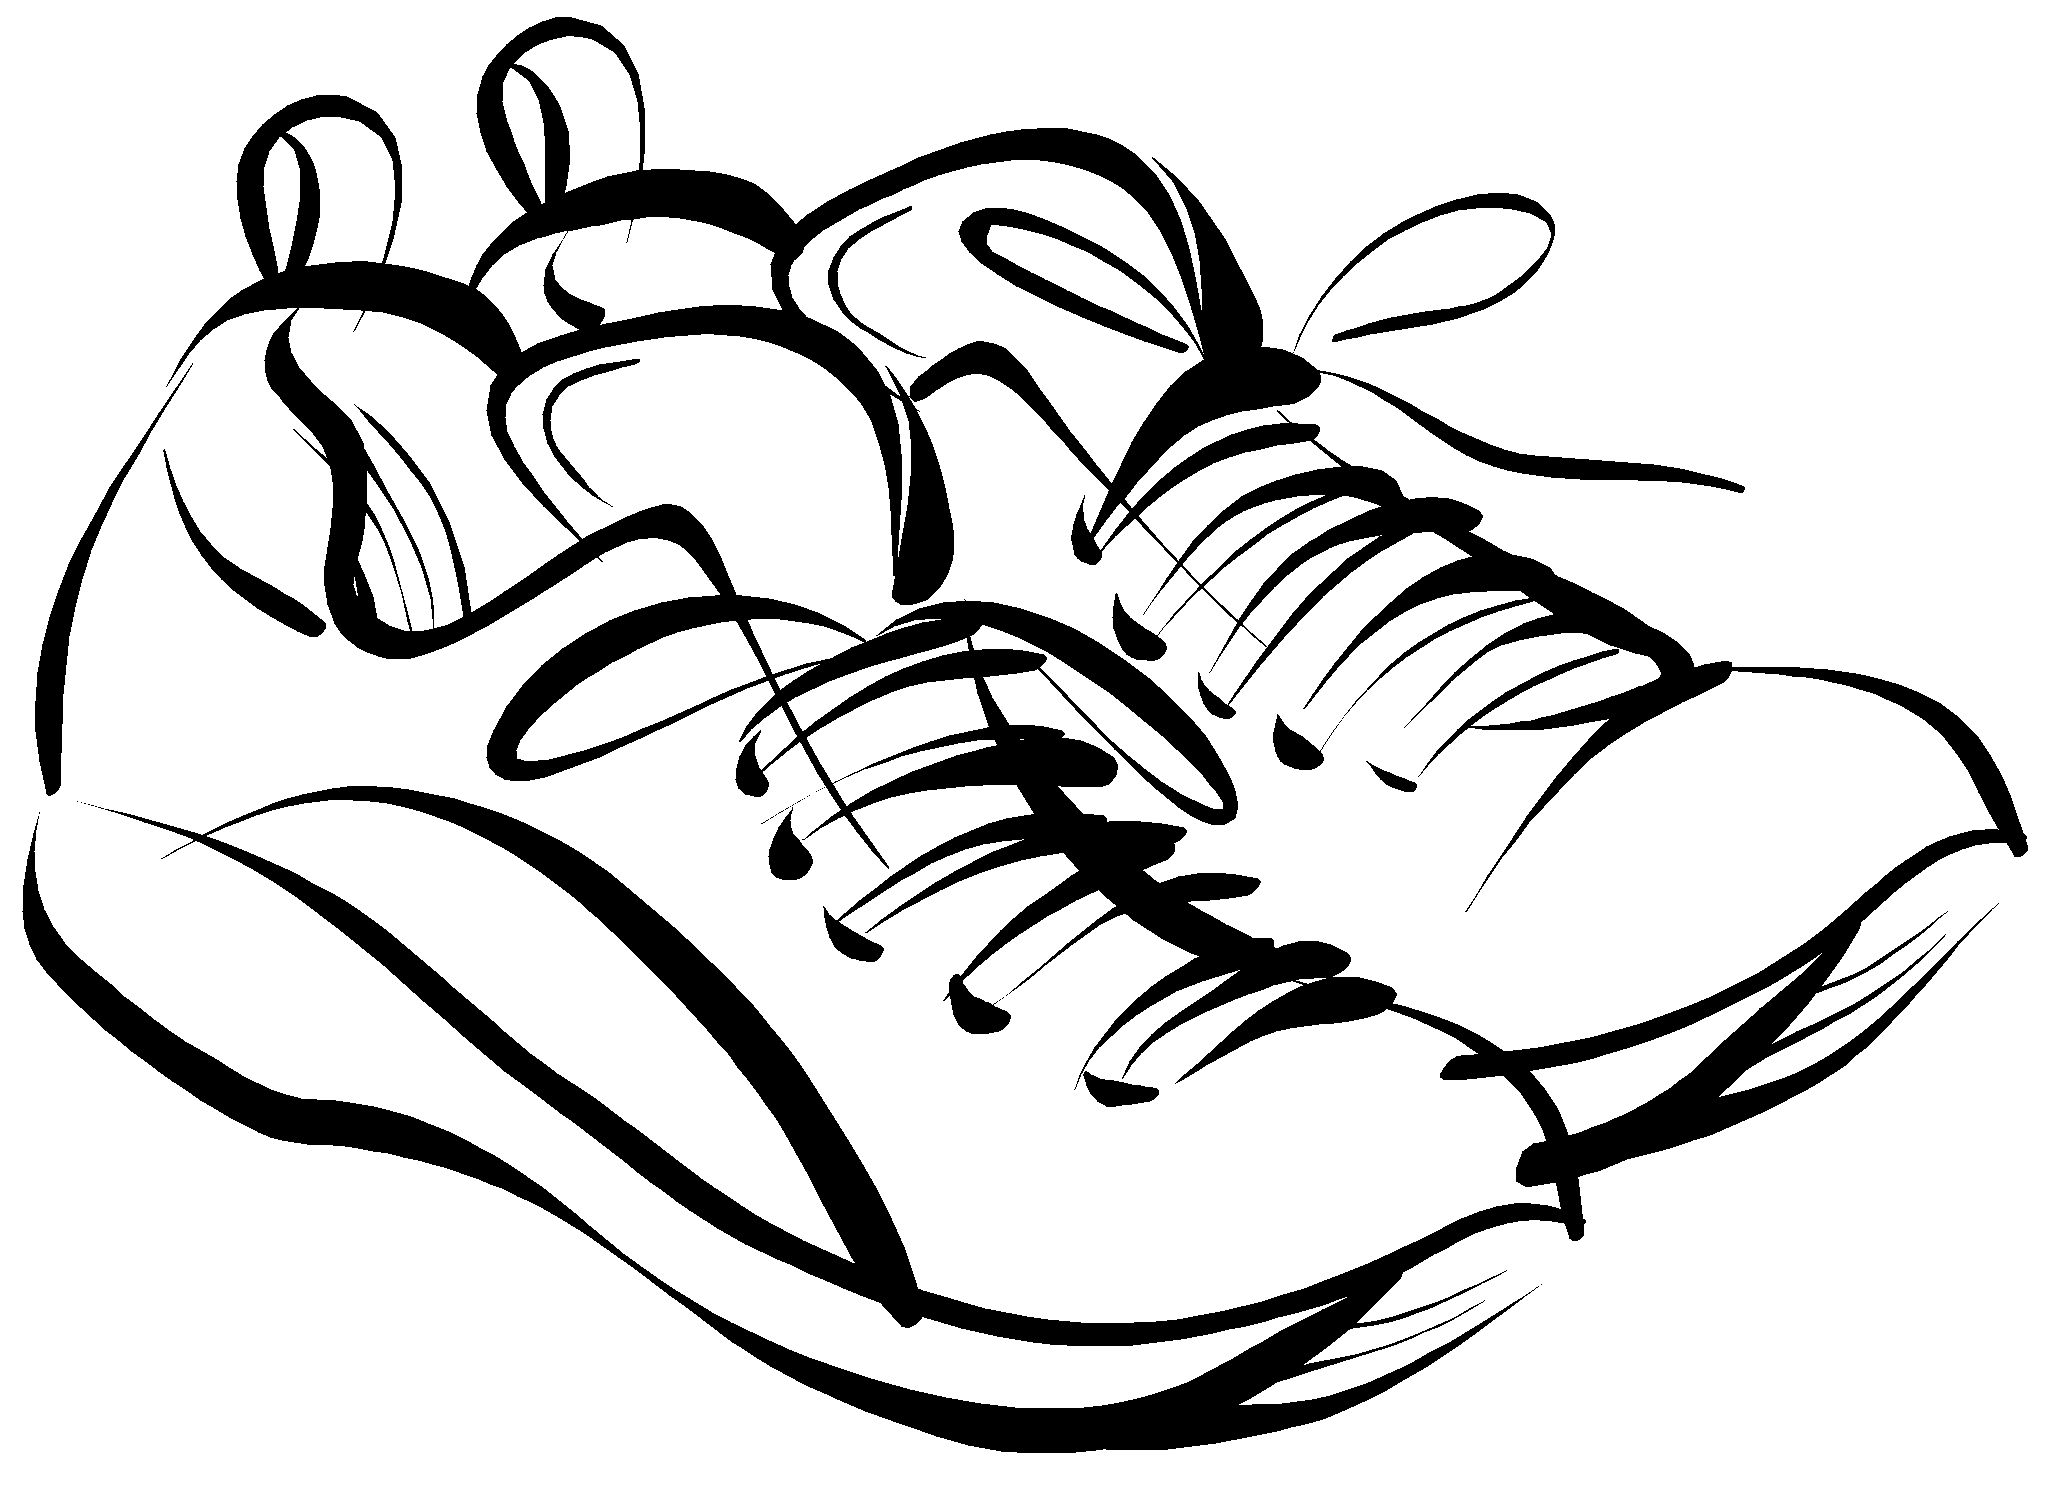 Track shoe running shoes clipart.